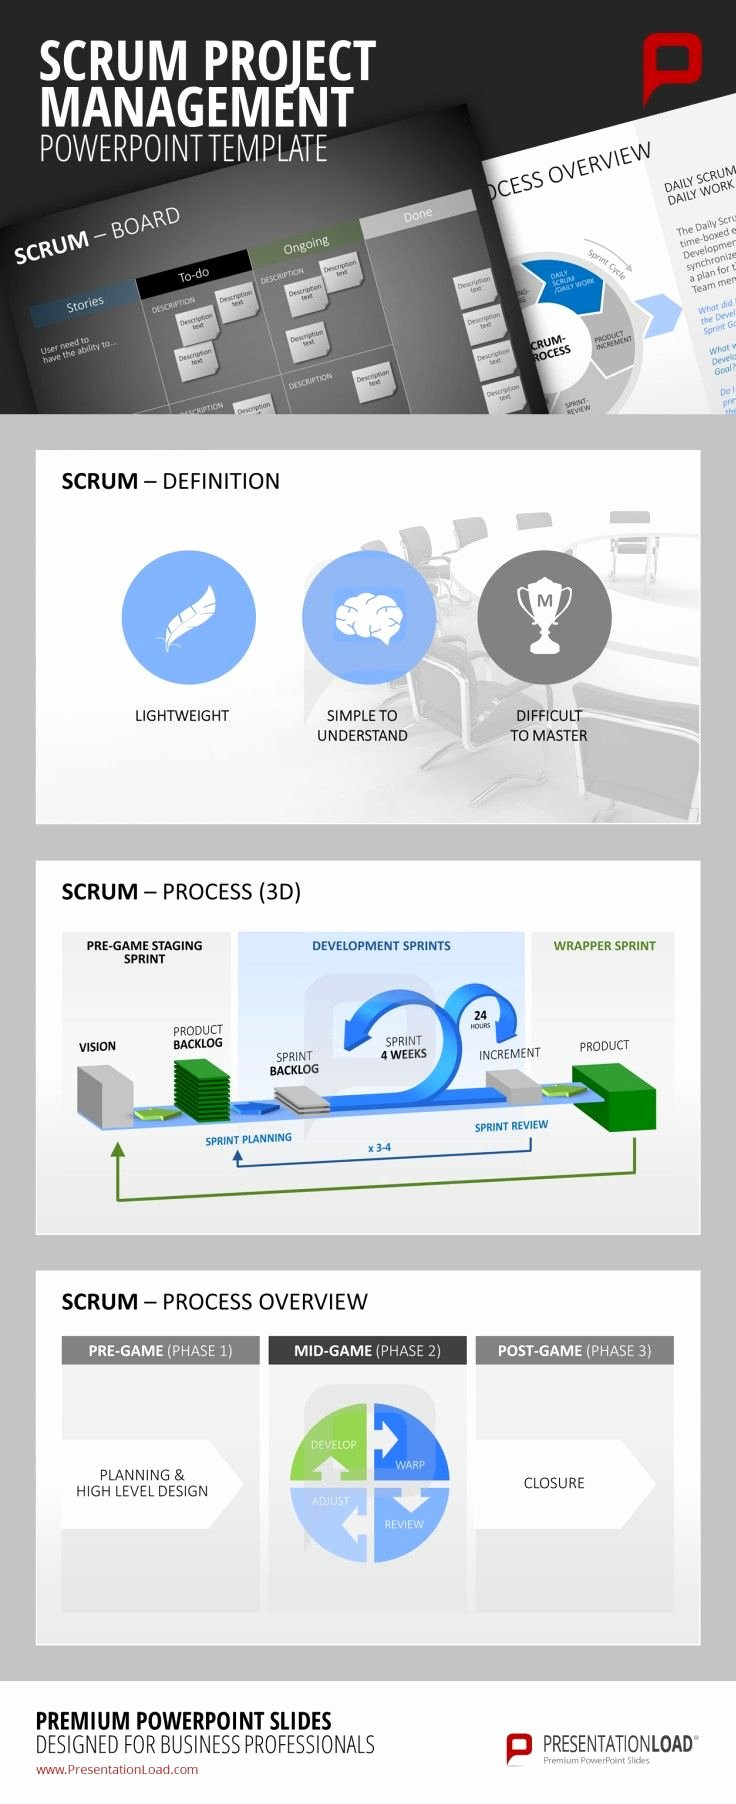 Project Management Powerpoint Template Best Of Scrum Project Management Powerpoint Templates